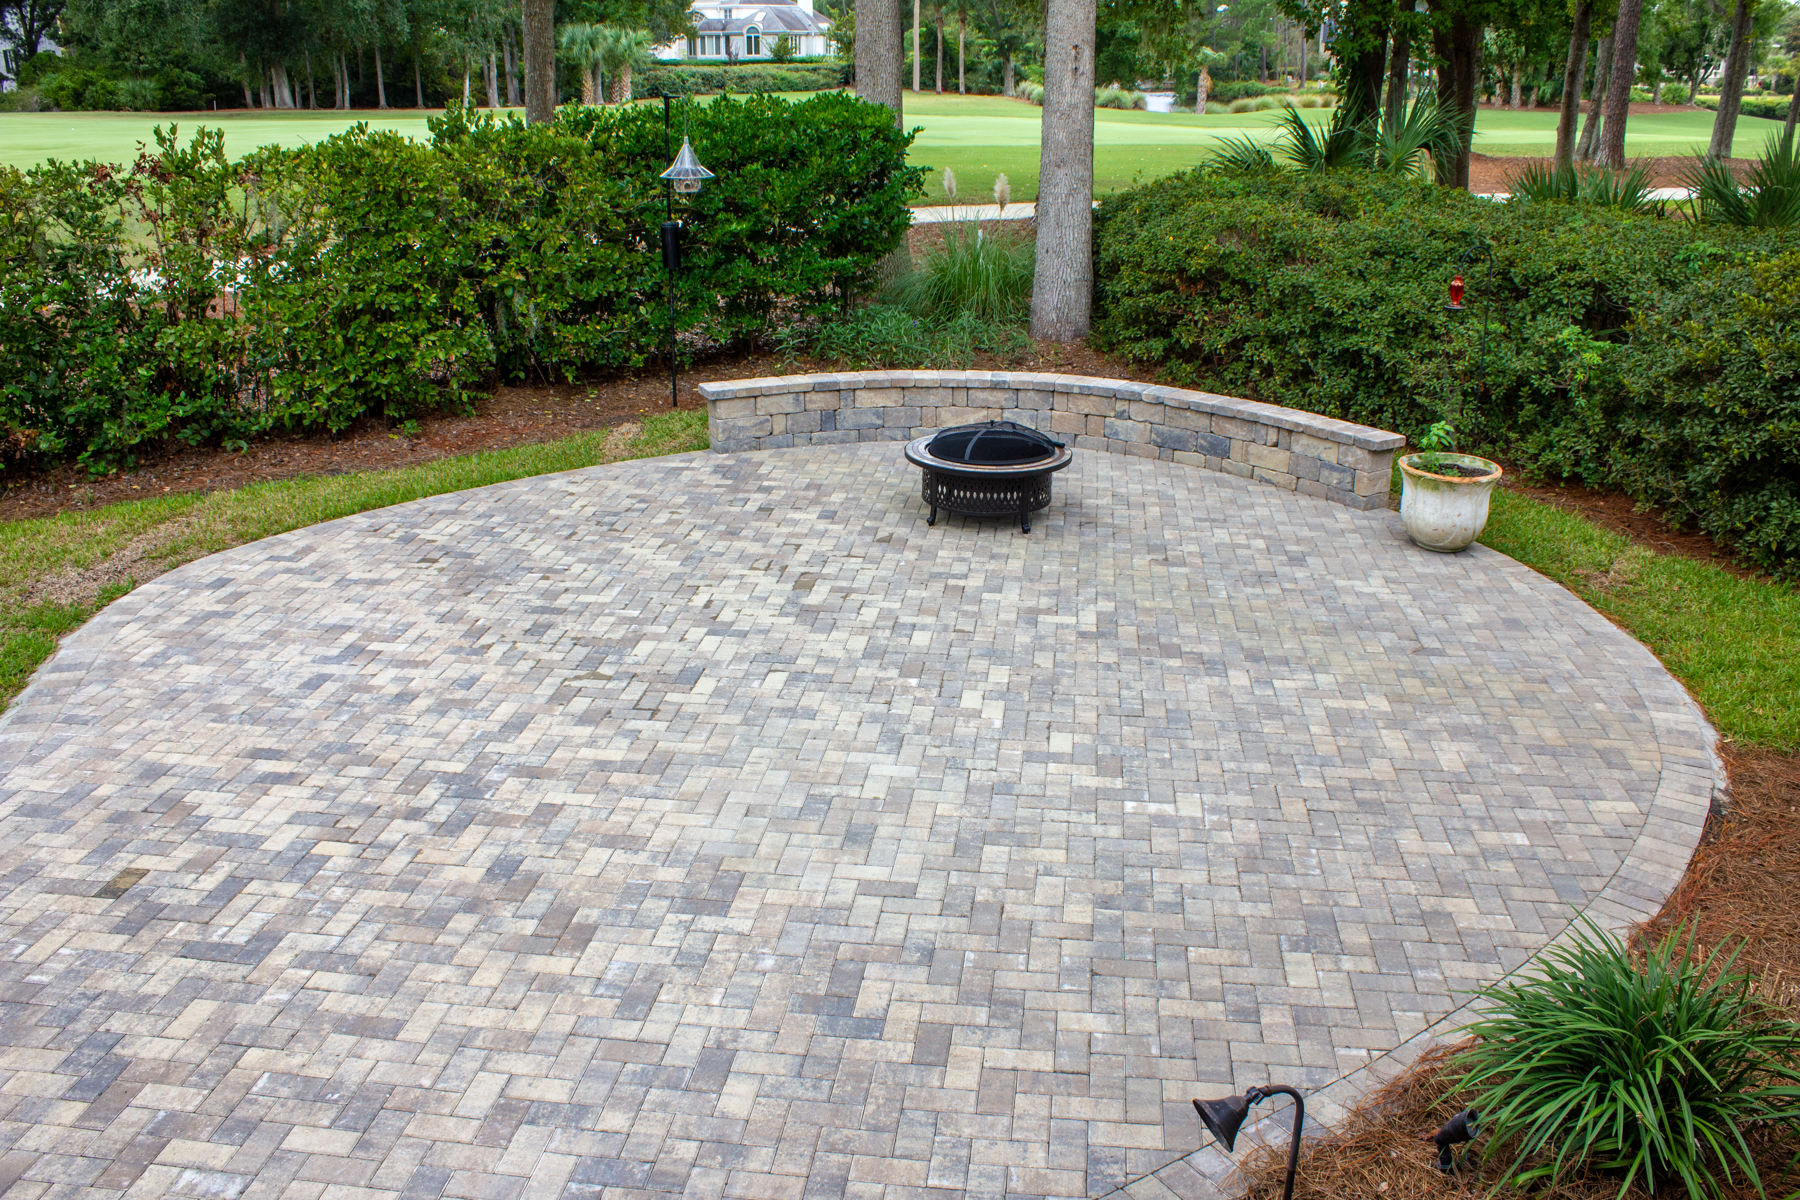 Pavers offer:  a unique way to customize your homes Outdoor Living space. With installation in less than a week, what could be better?!